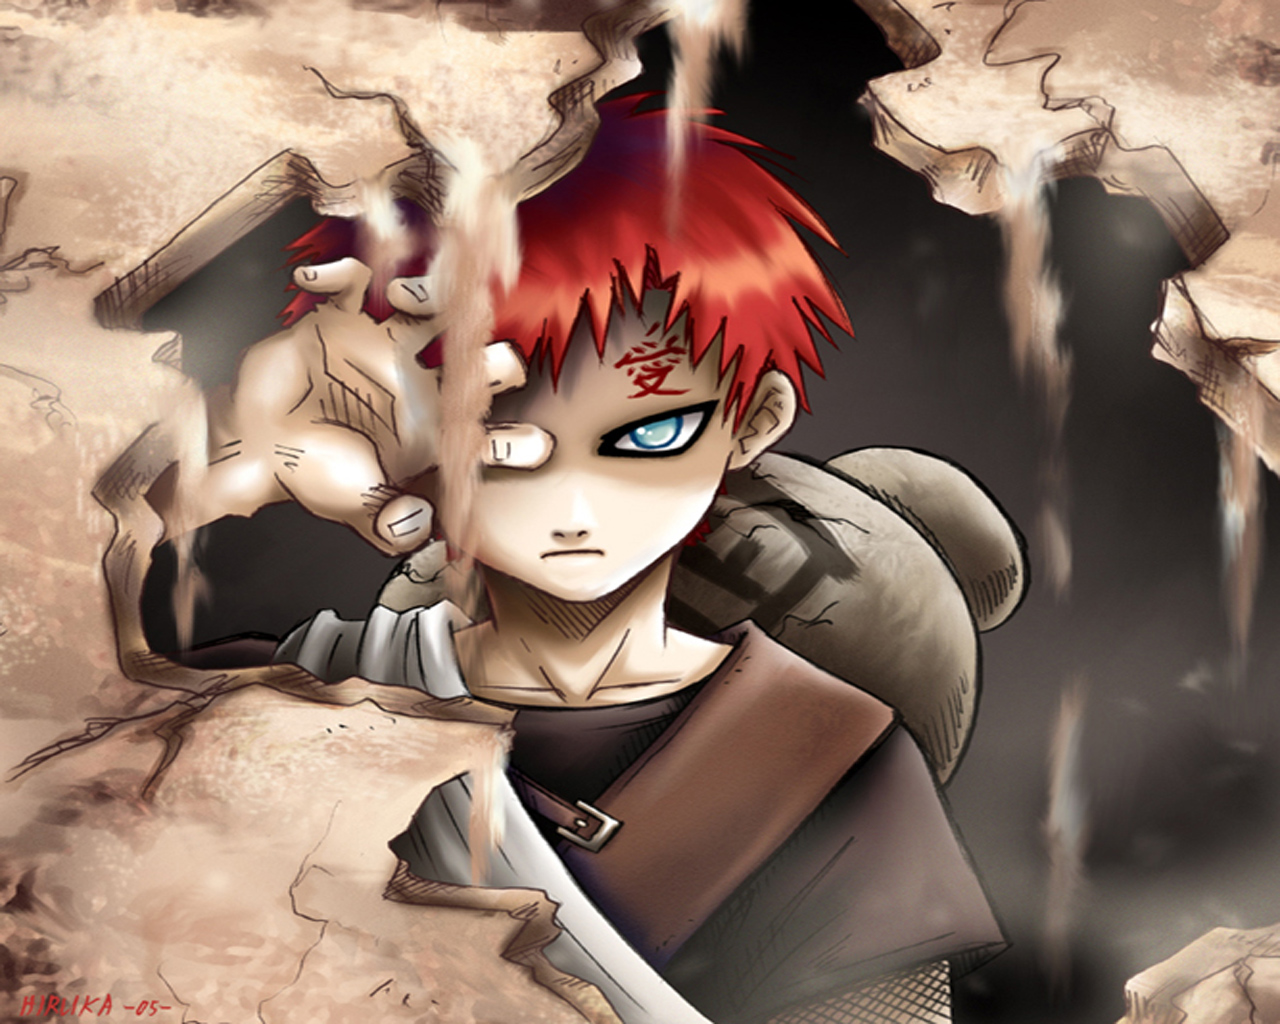 Gaara Shukaku Wallpaper High Quality Wallpaper Area HD 1280x1024